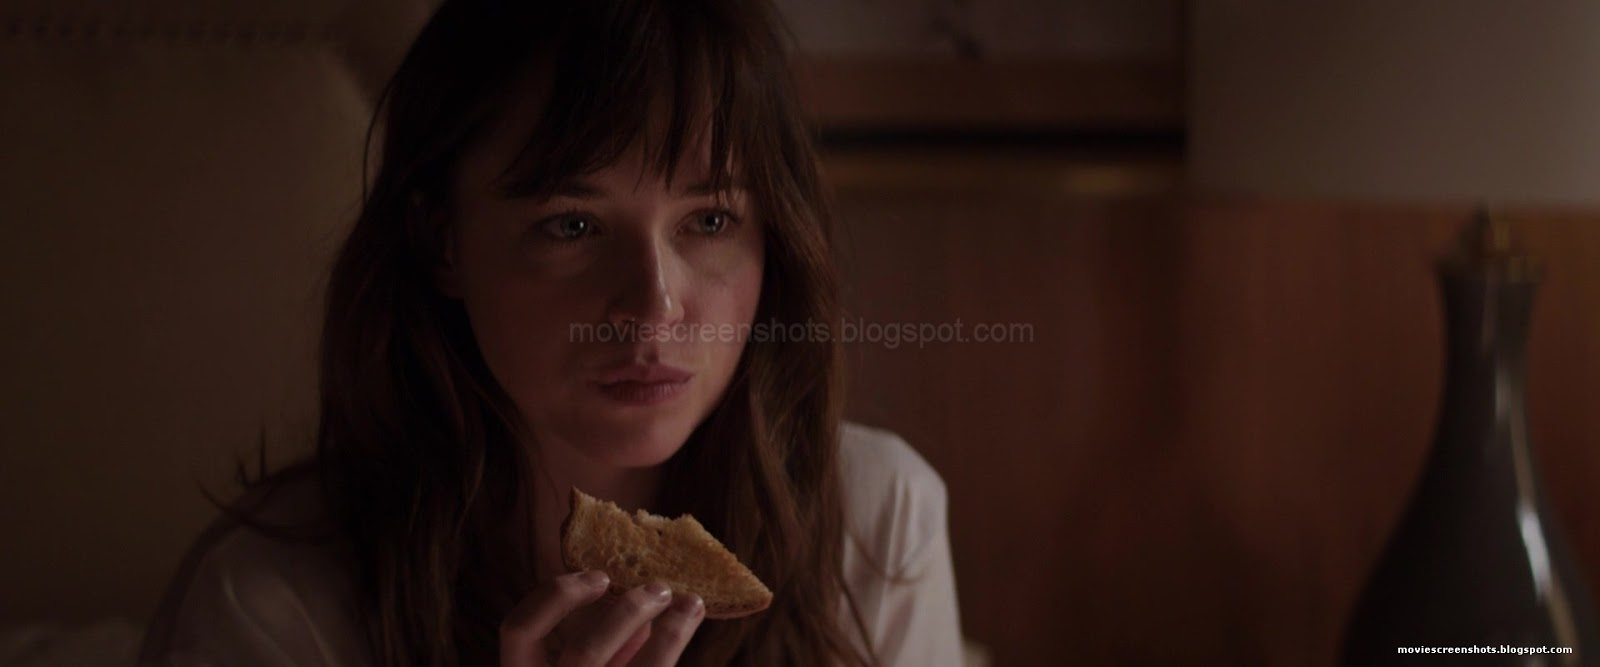 Vagebond 39 s movie screenshots fifty shades of grey 2015 for 50 shades of grey films